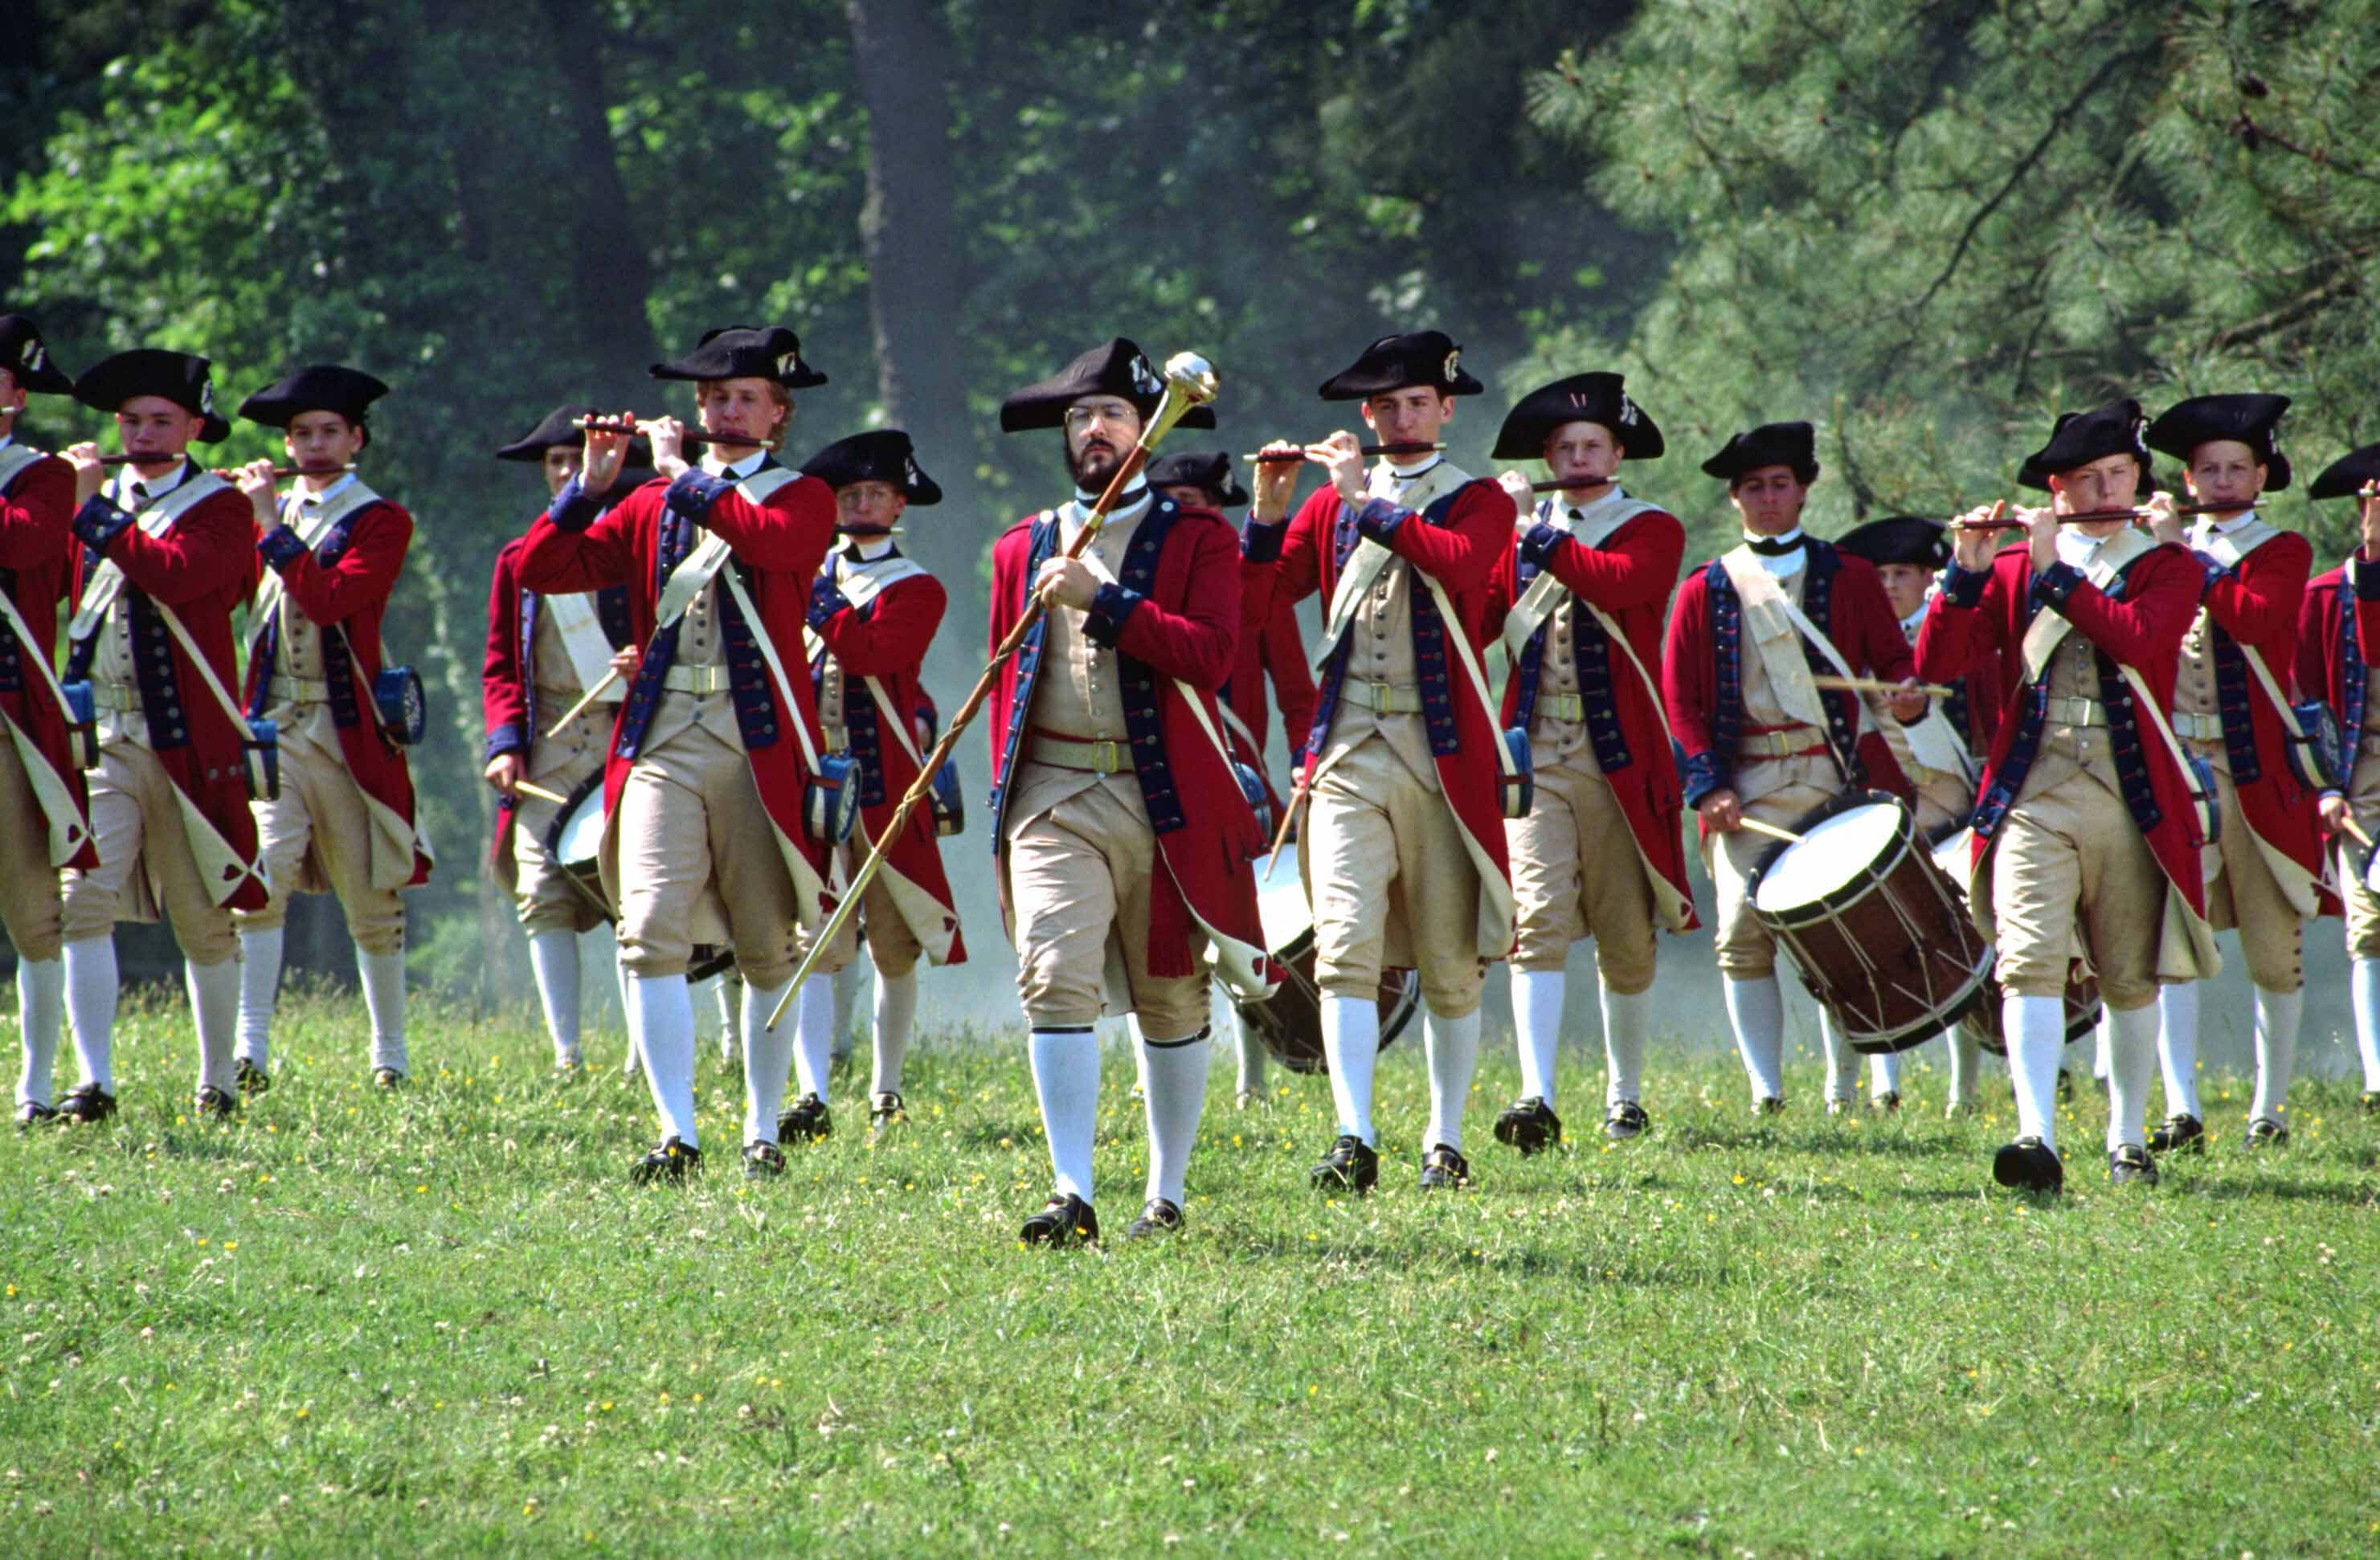 Marching British Soldiers | Historic Colonial Williamsburg | Westgate Resorts